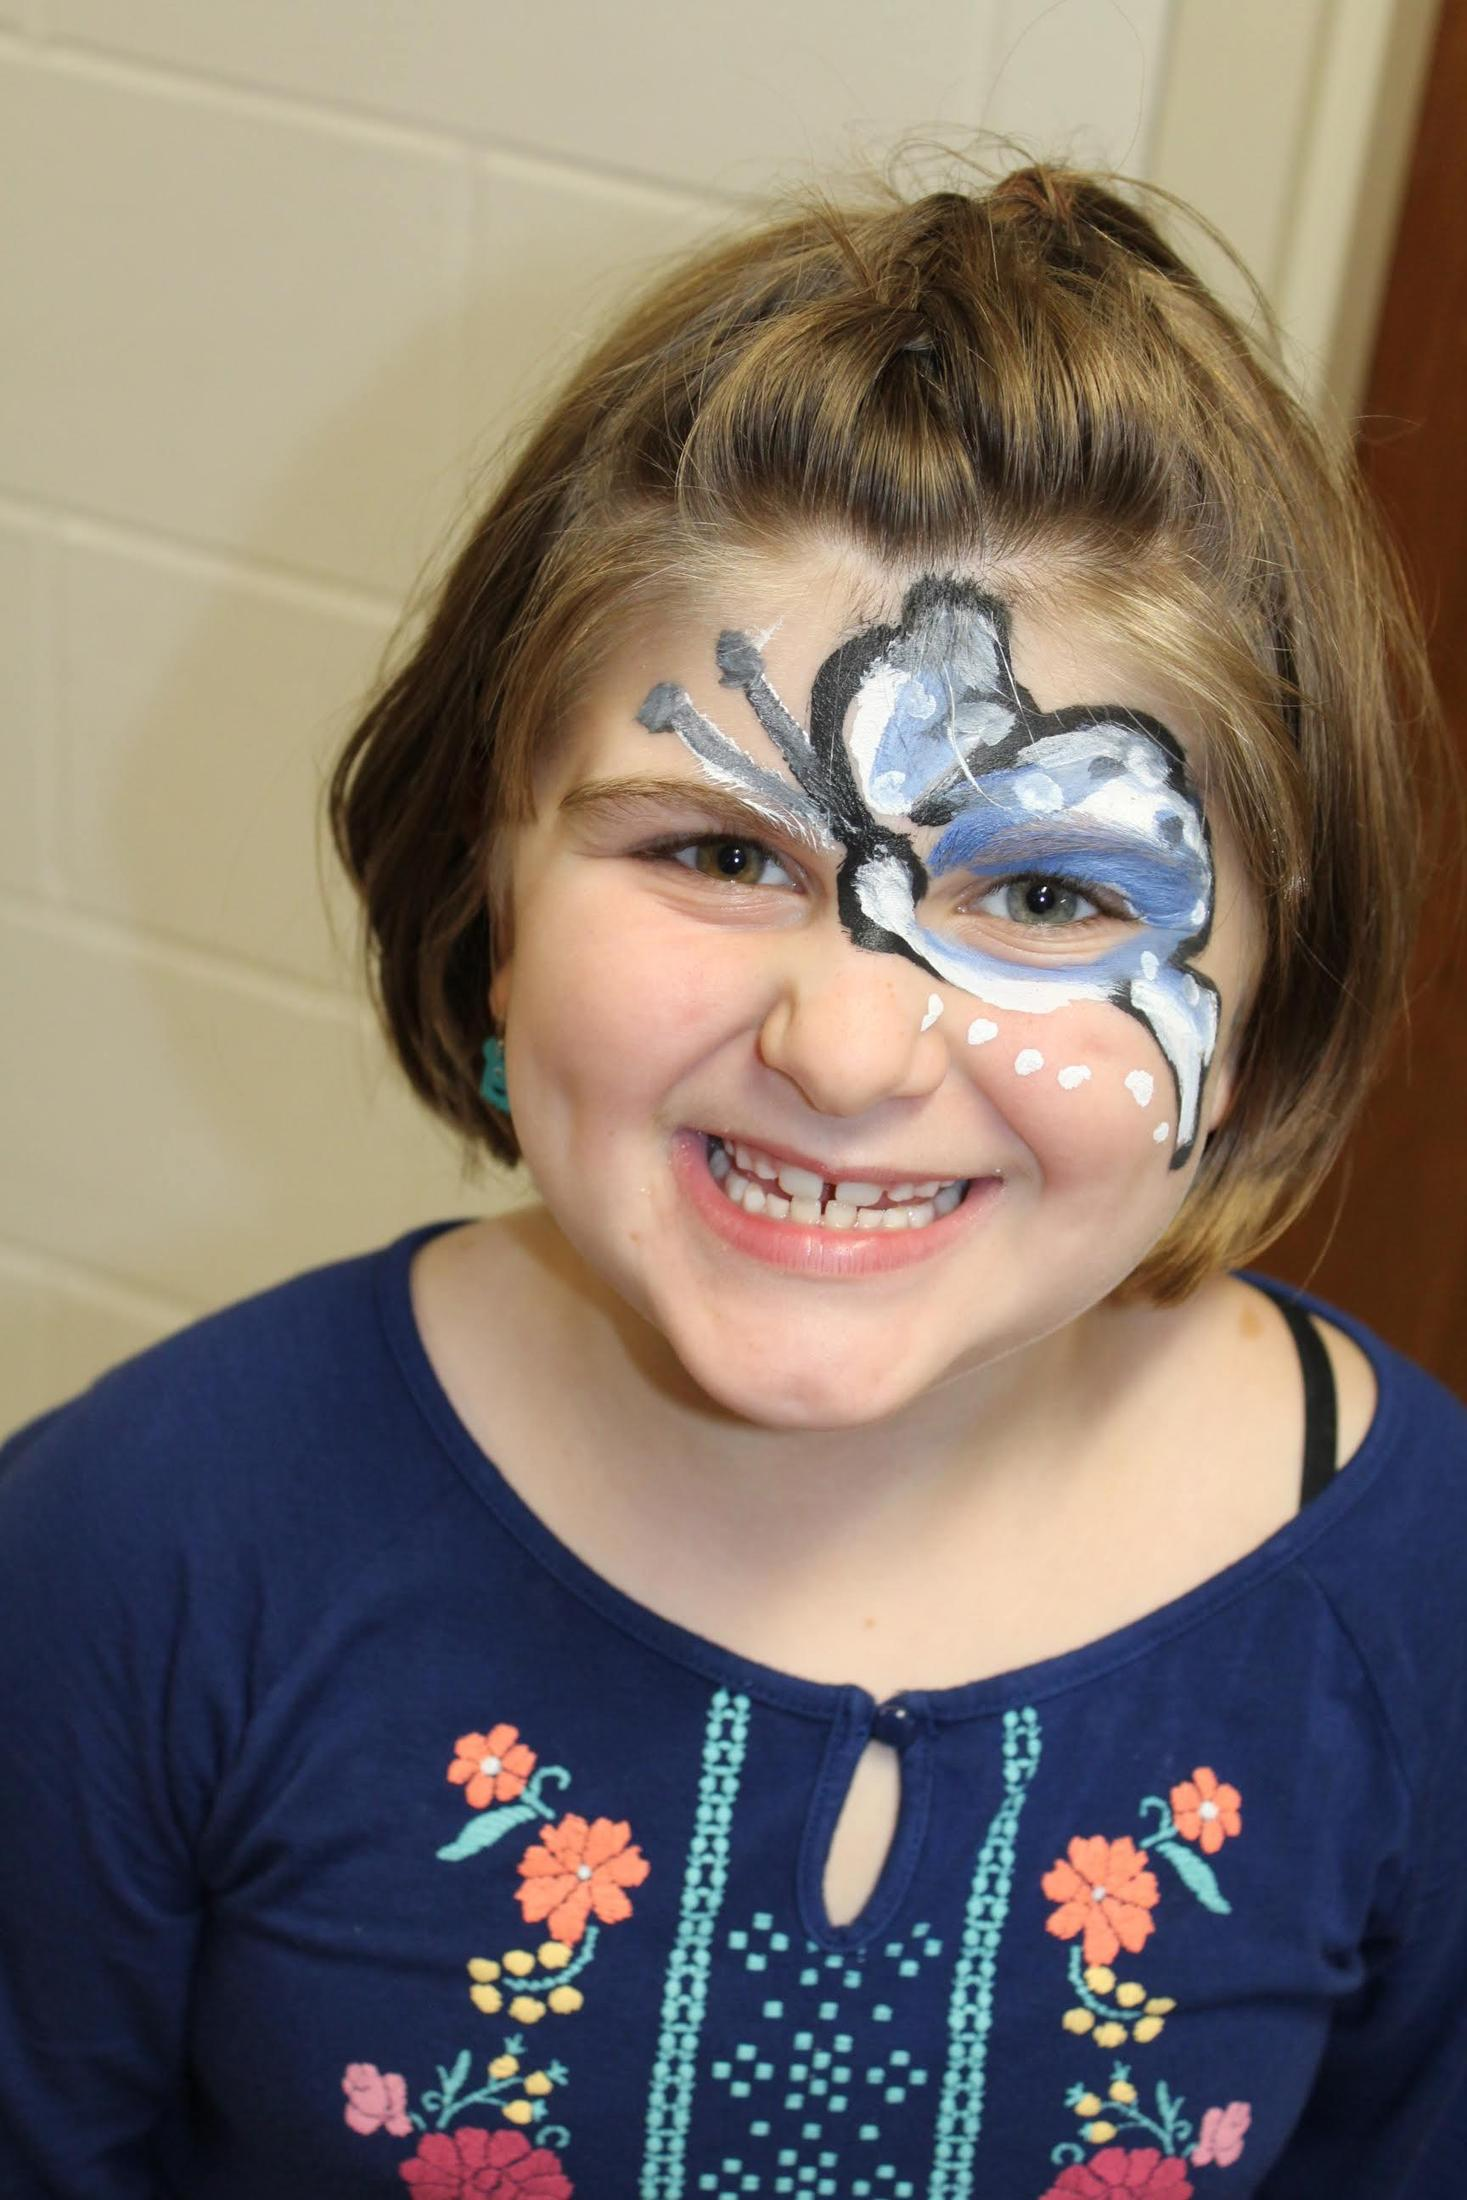 Student with a butterfly on her face.